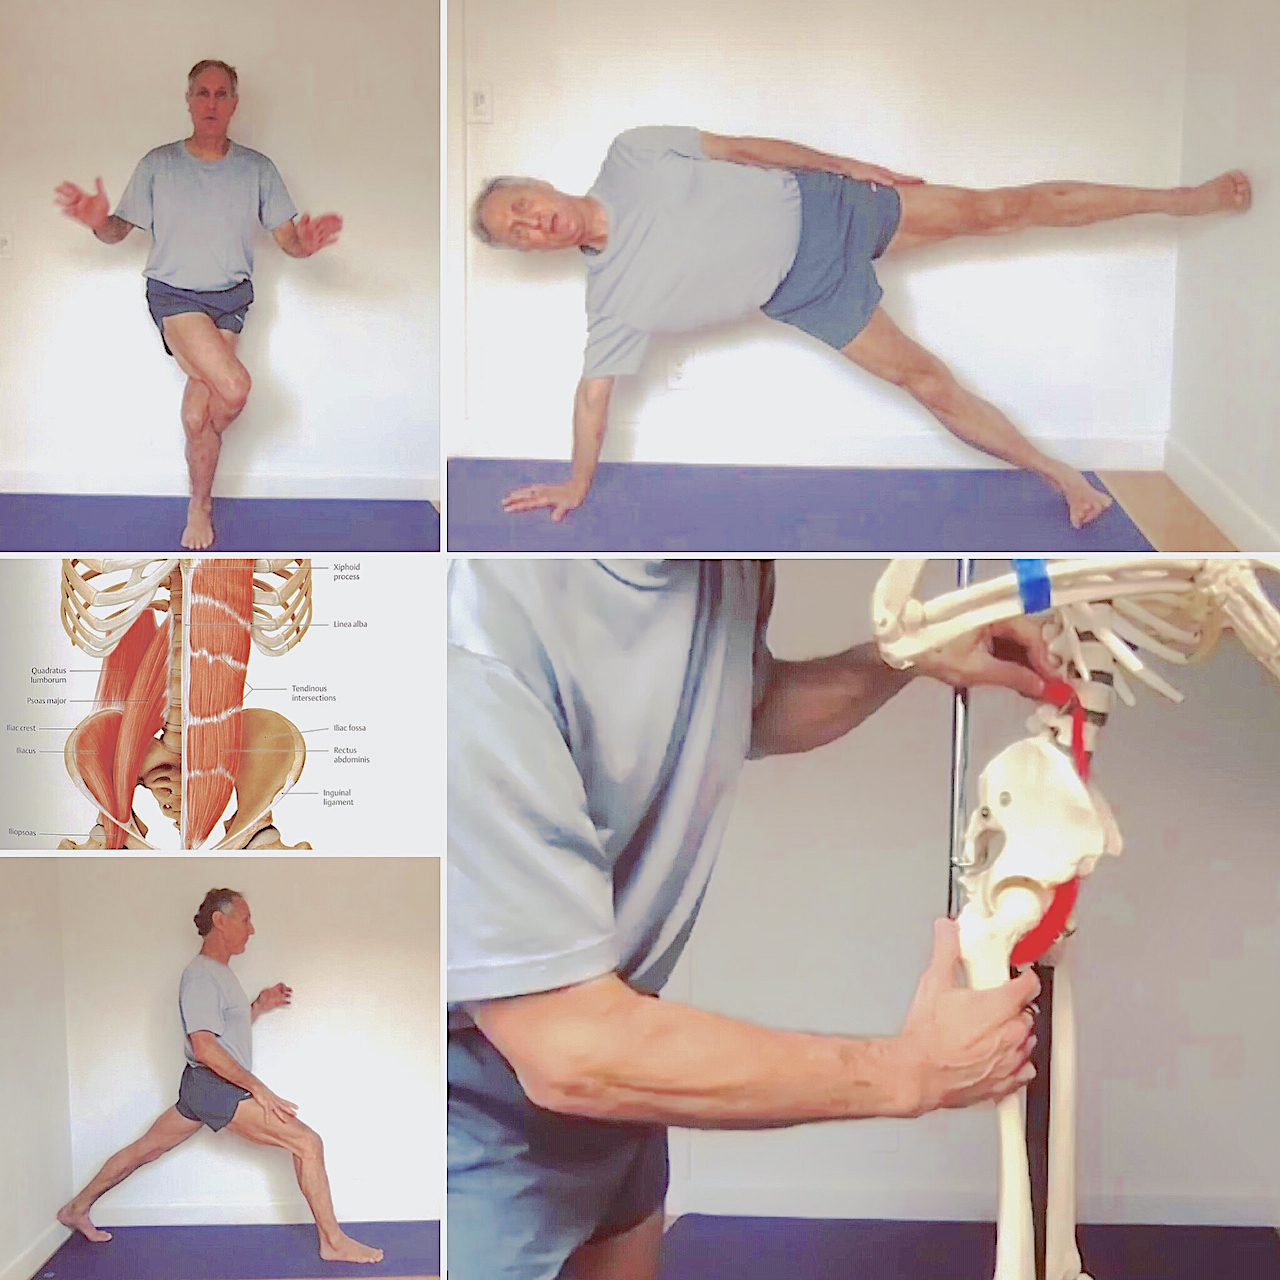 Iyengar Anatomy Series: Healthy Hips, Knees and Shoulders with Roger Cole, Ph.D